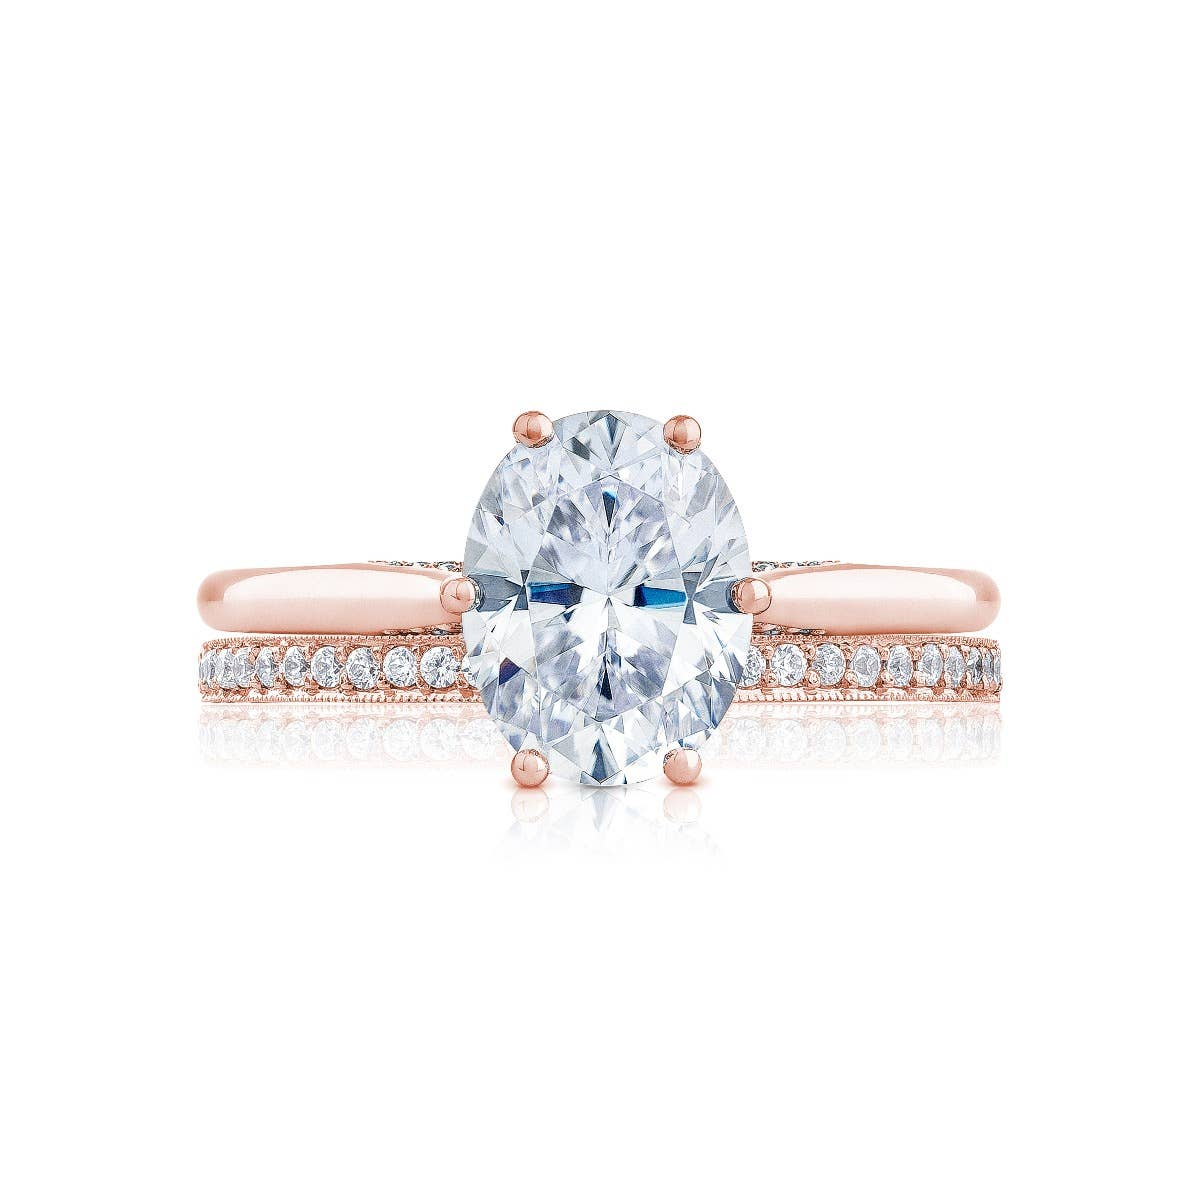 Rose Gold engagement ring by Tacori on white background